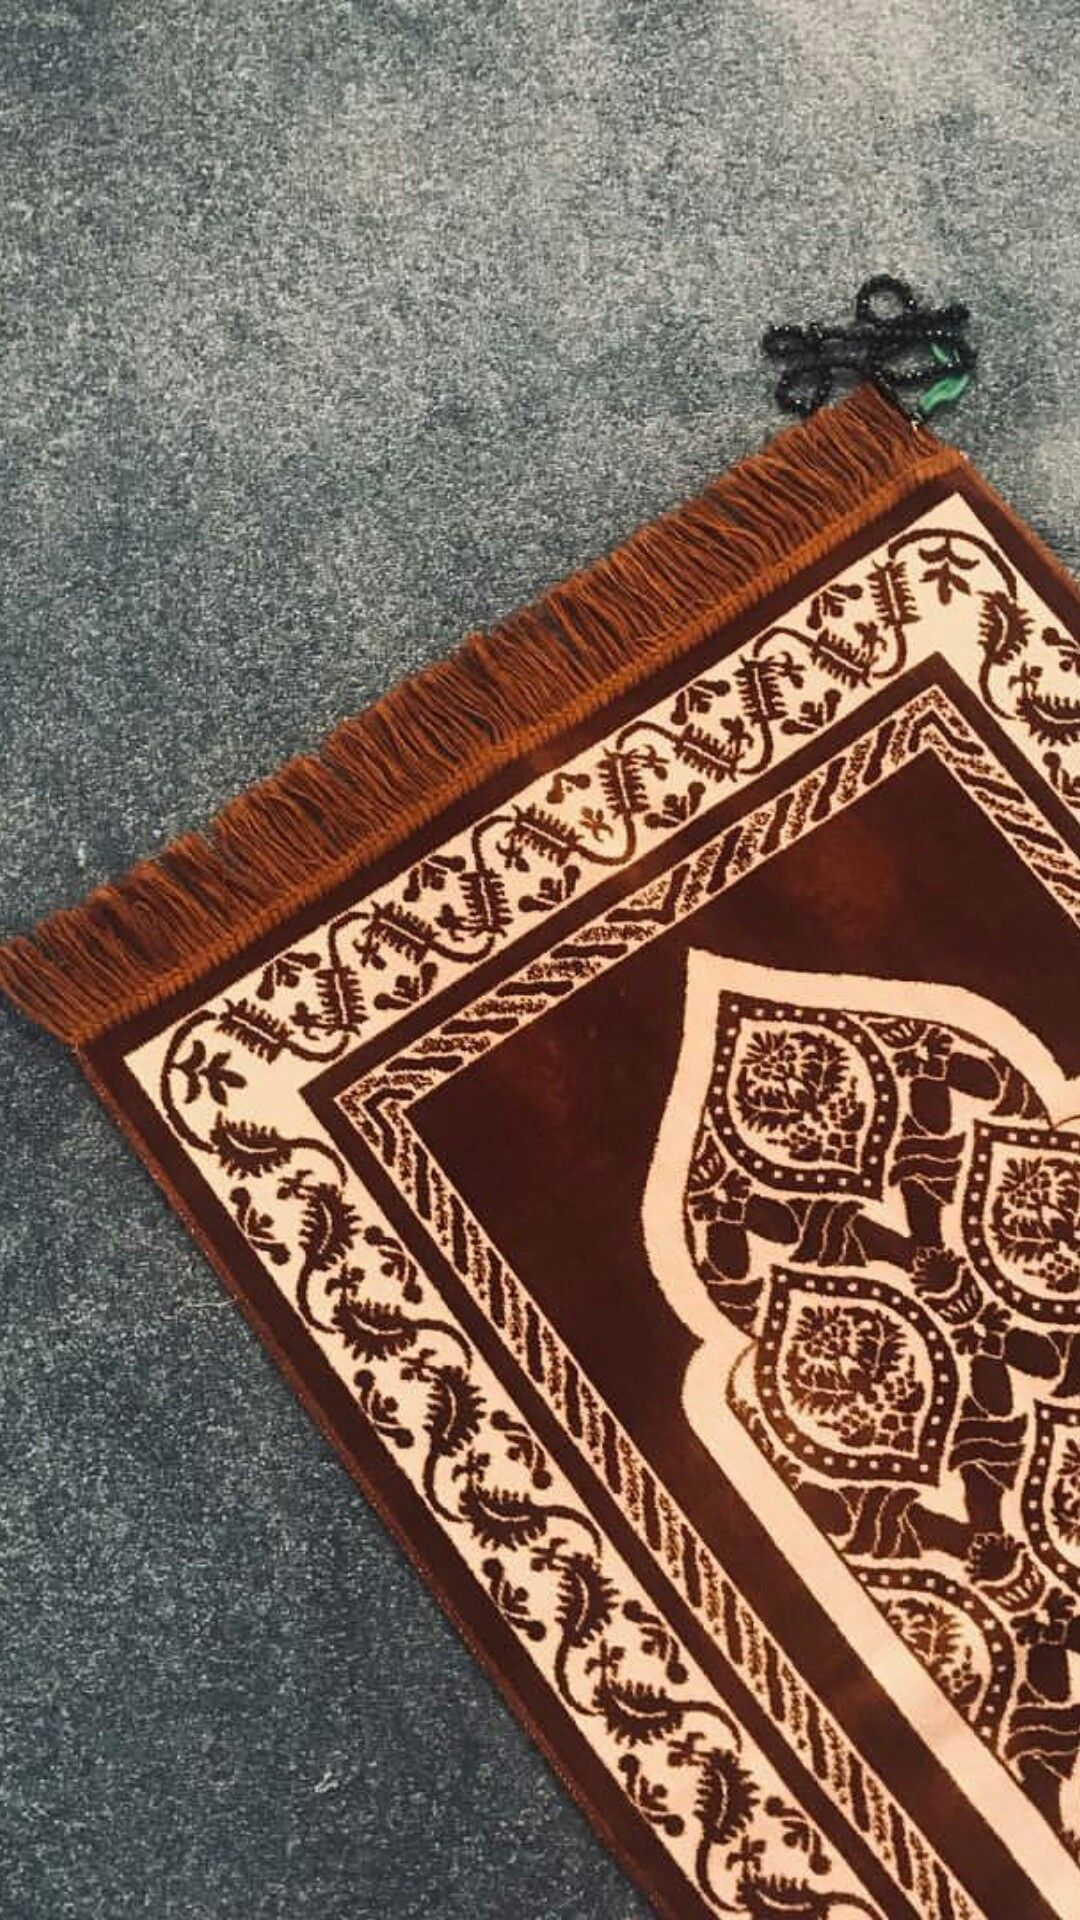 Muslim Prayer Rug Islamic Textile Mosque Flooring Praying Mats Muslim Prayer Rug Prayer Rug Muslim Prayer